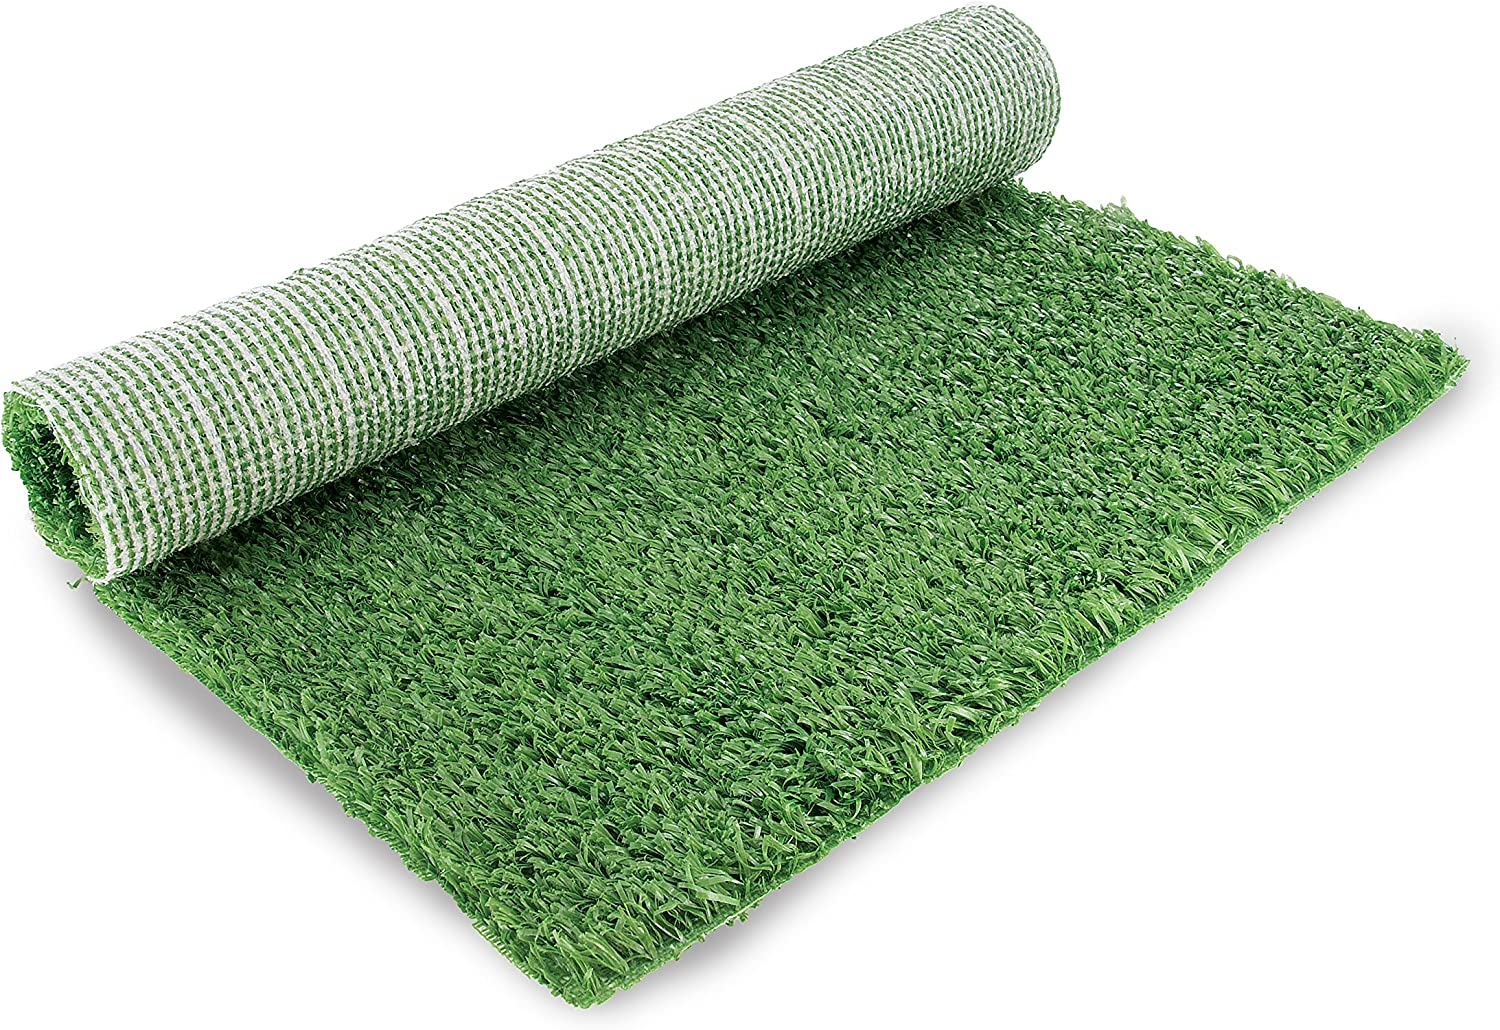 PetSafe Pet Loo Replacement Grass Limited time sale Excellence